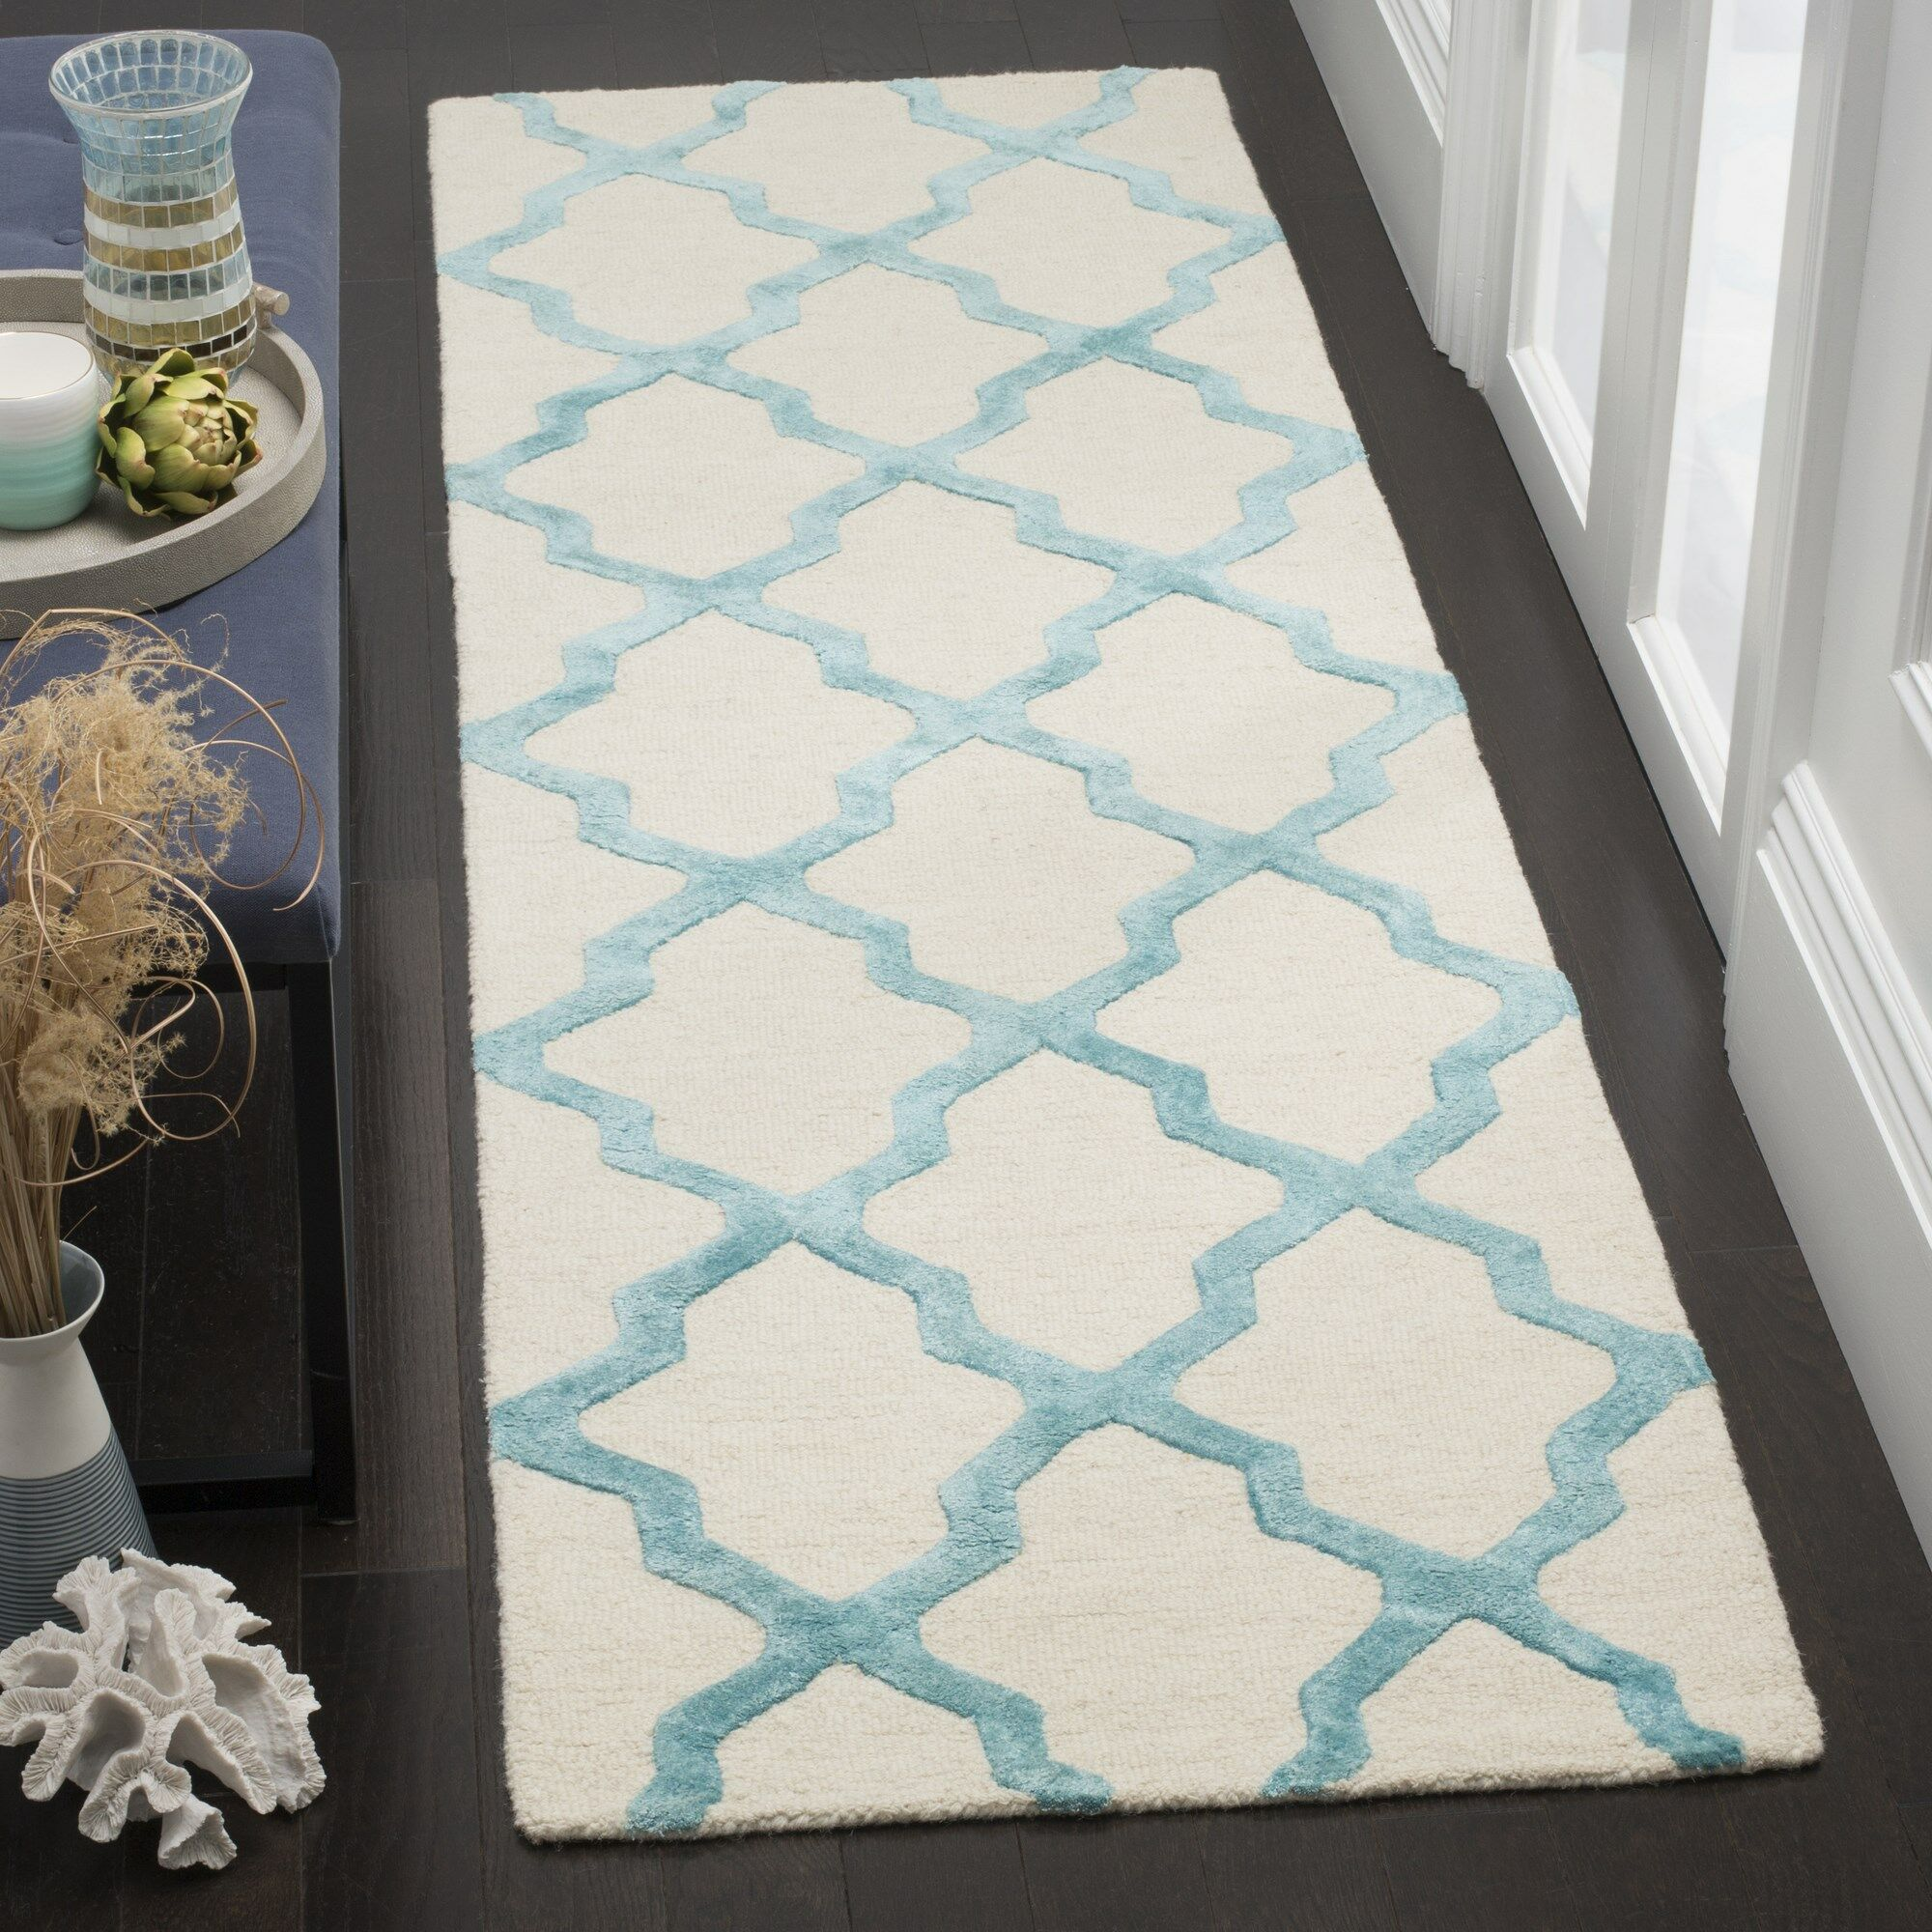 Parker Lane Hand-Tufted Ivory/Turquoise Area Rug Rug Size: Rectangle 5' x 8'